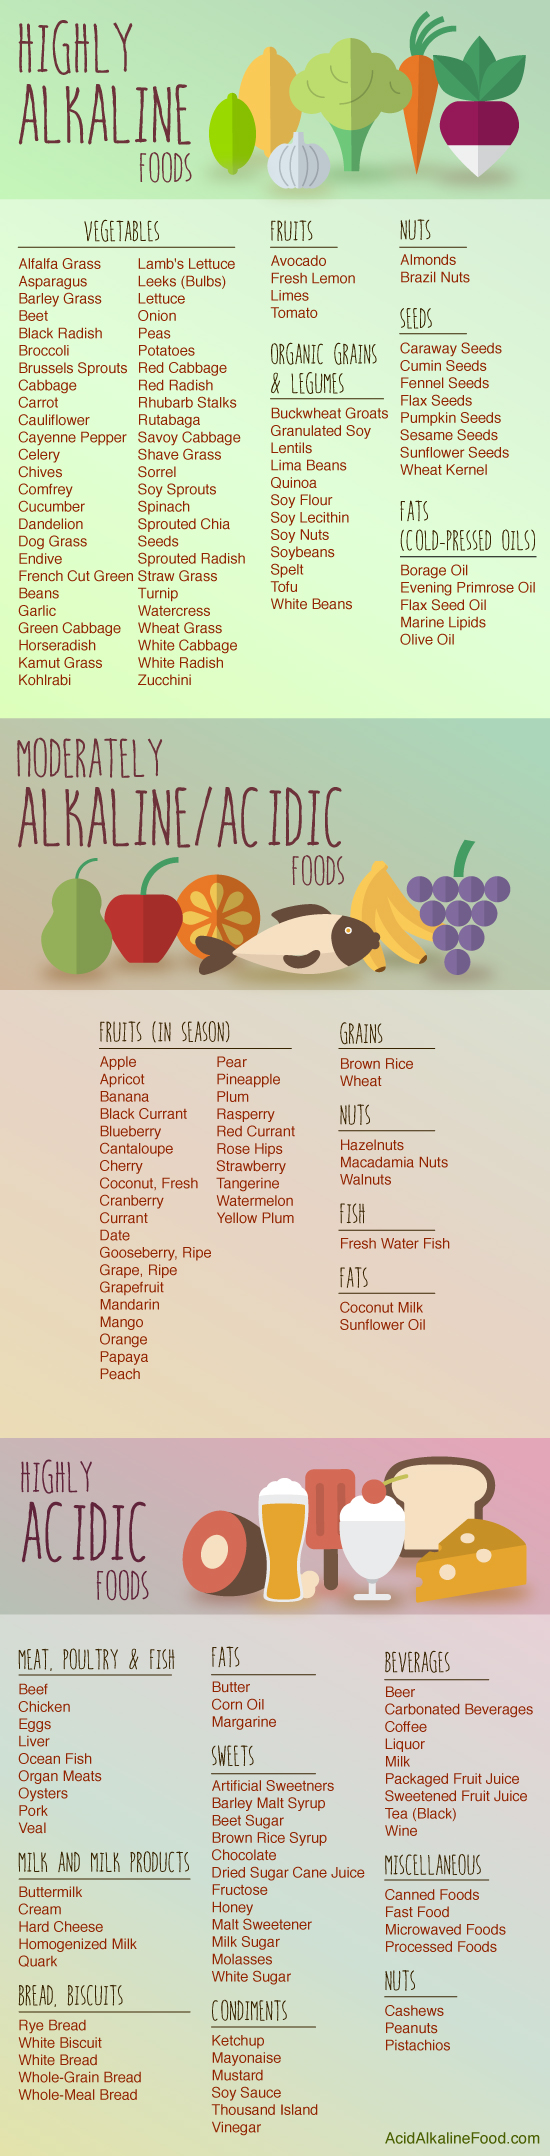 High Alkaline Foods & Acidic Foods